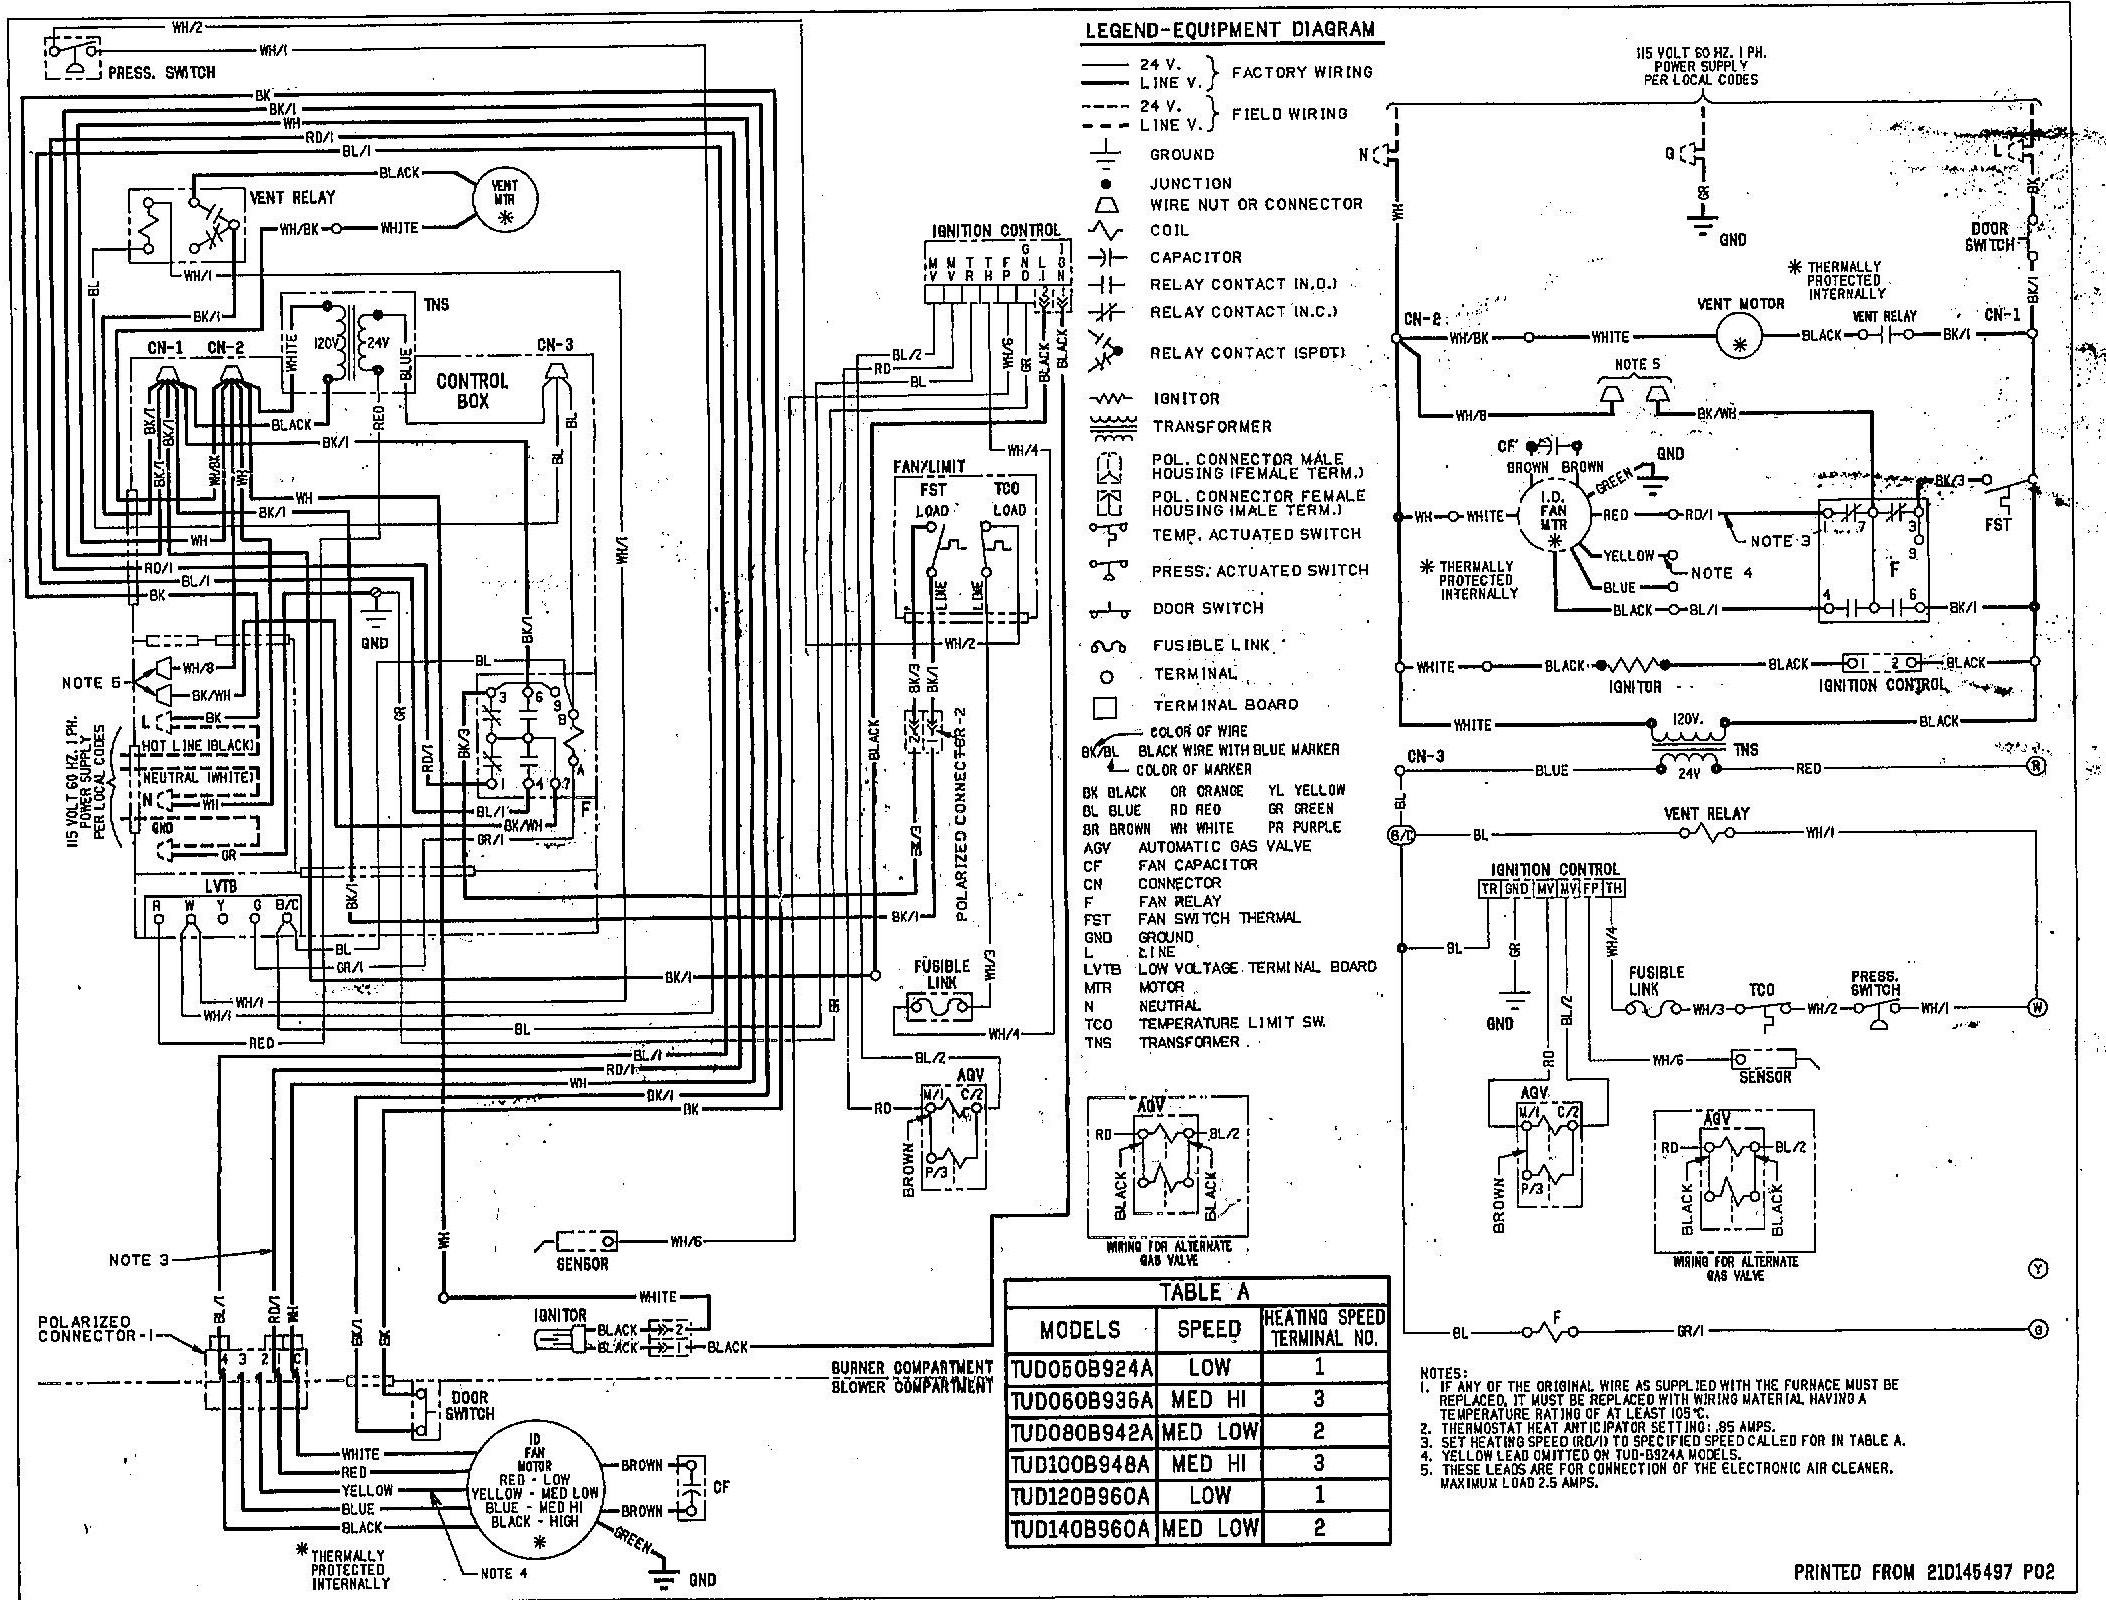 Diagram Modine Pa50ab Wiring Diagram Full Version Hd Quality Wiring Diagram Schematictv2h Romaindanza It